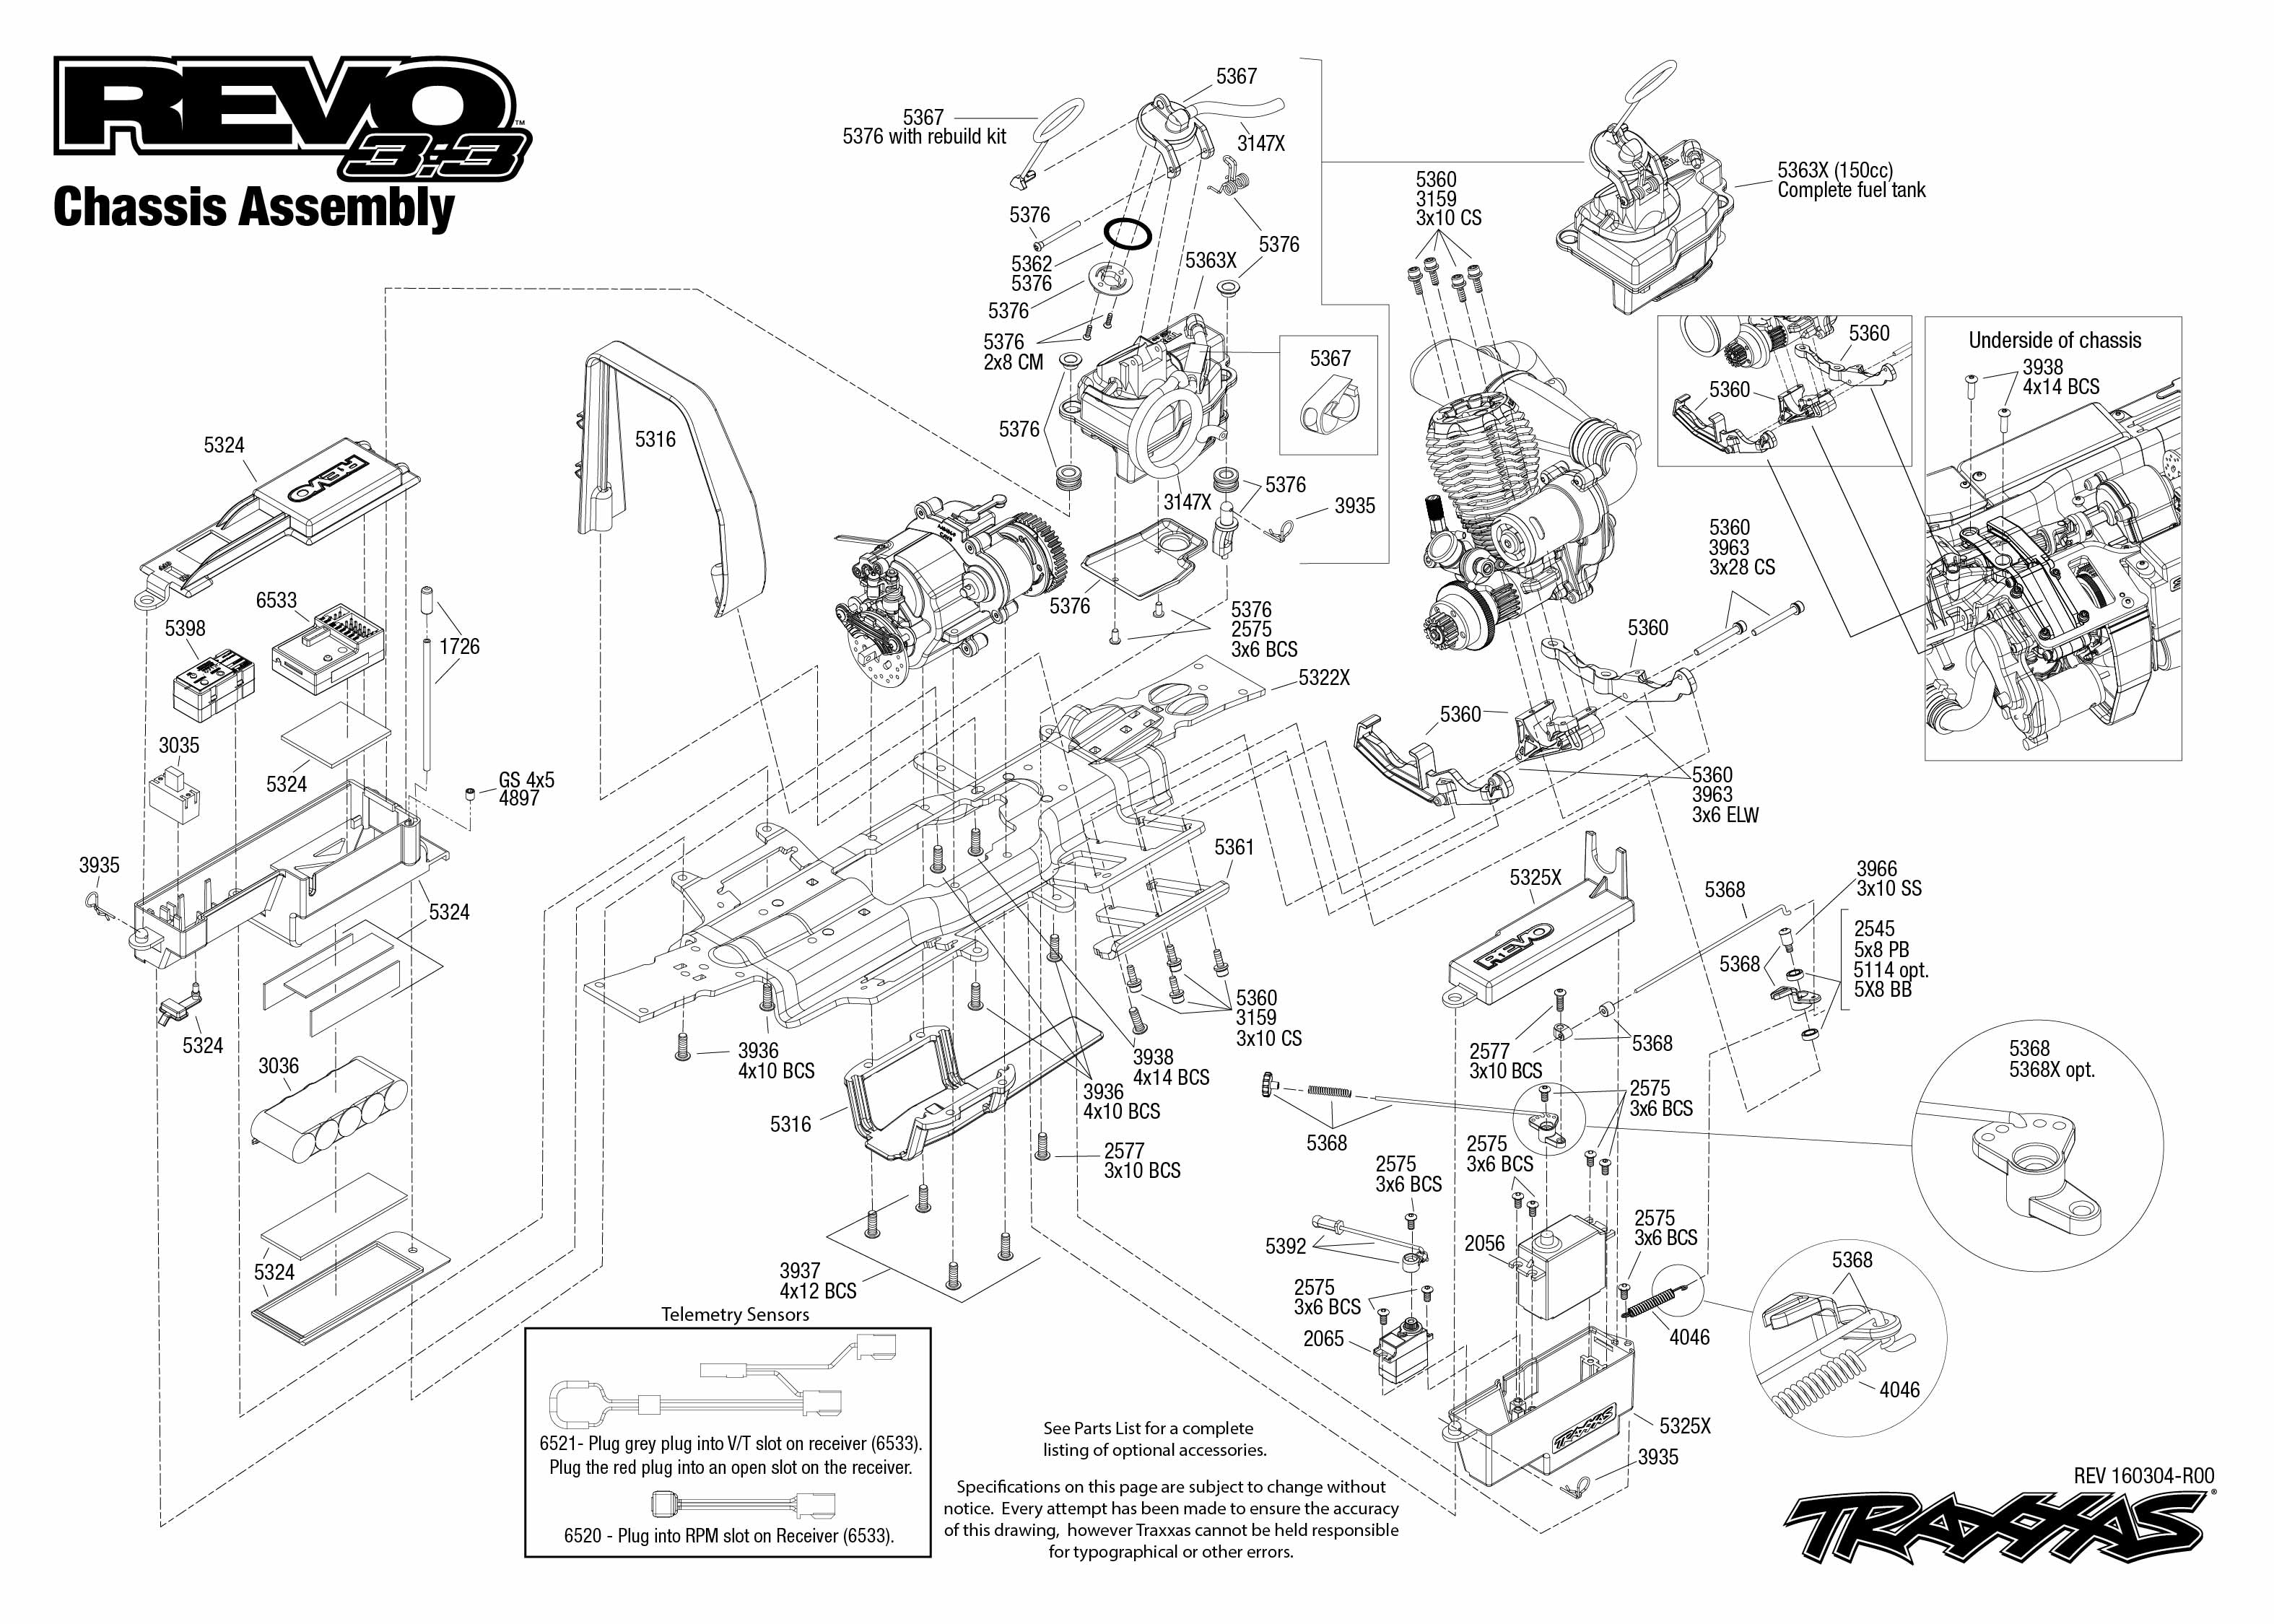 Ford 3000 Tractor Starter Solenoid Wiring Diagram Mustang Chevy Diagrams In Truck Saleexpert Me 5000 How